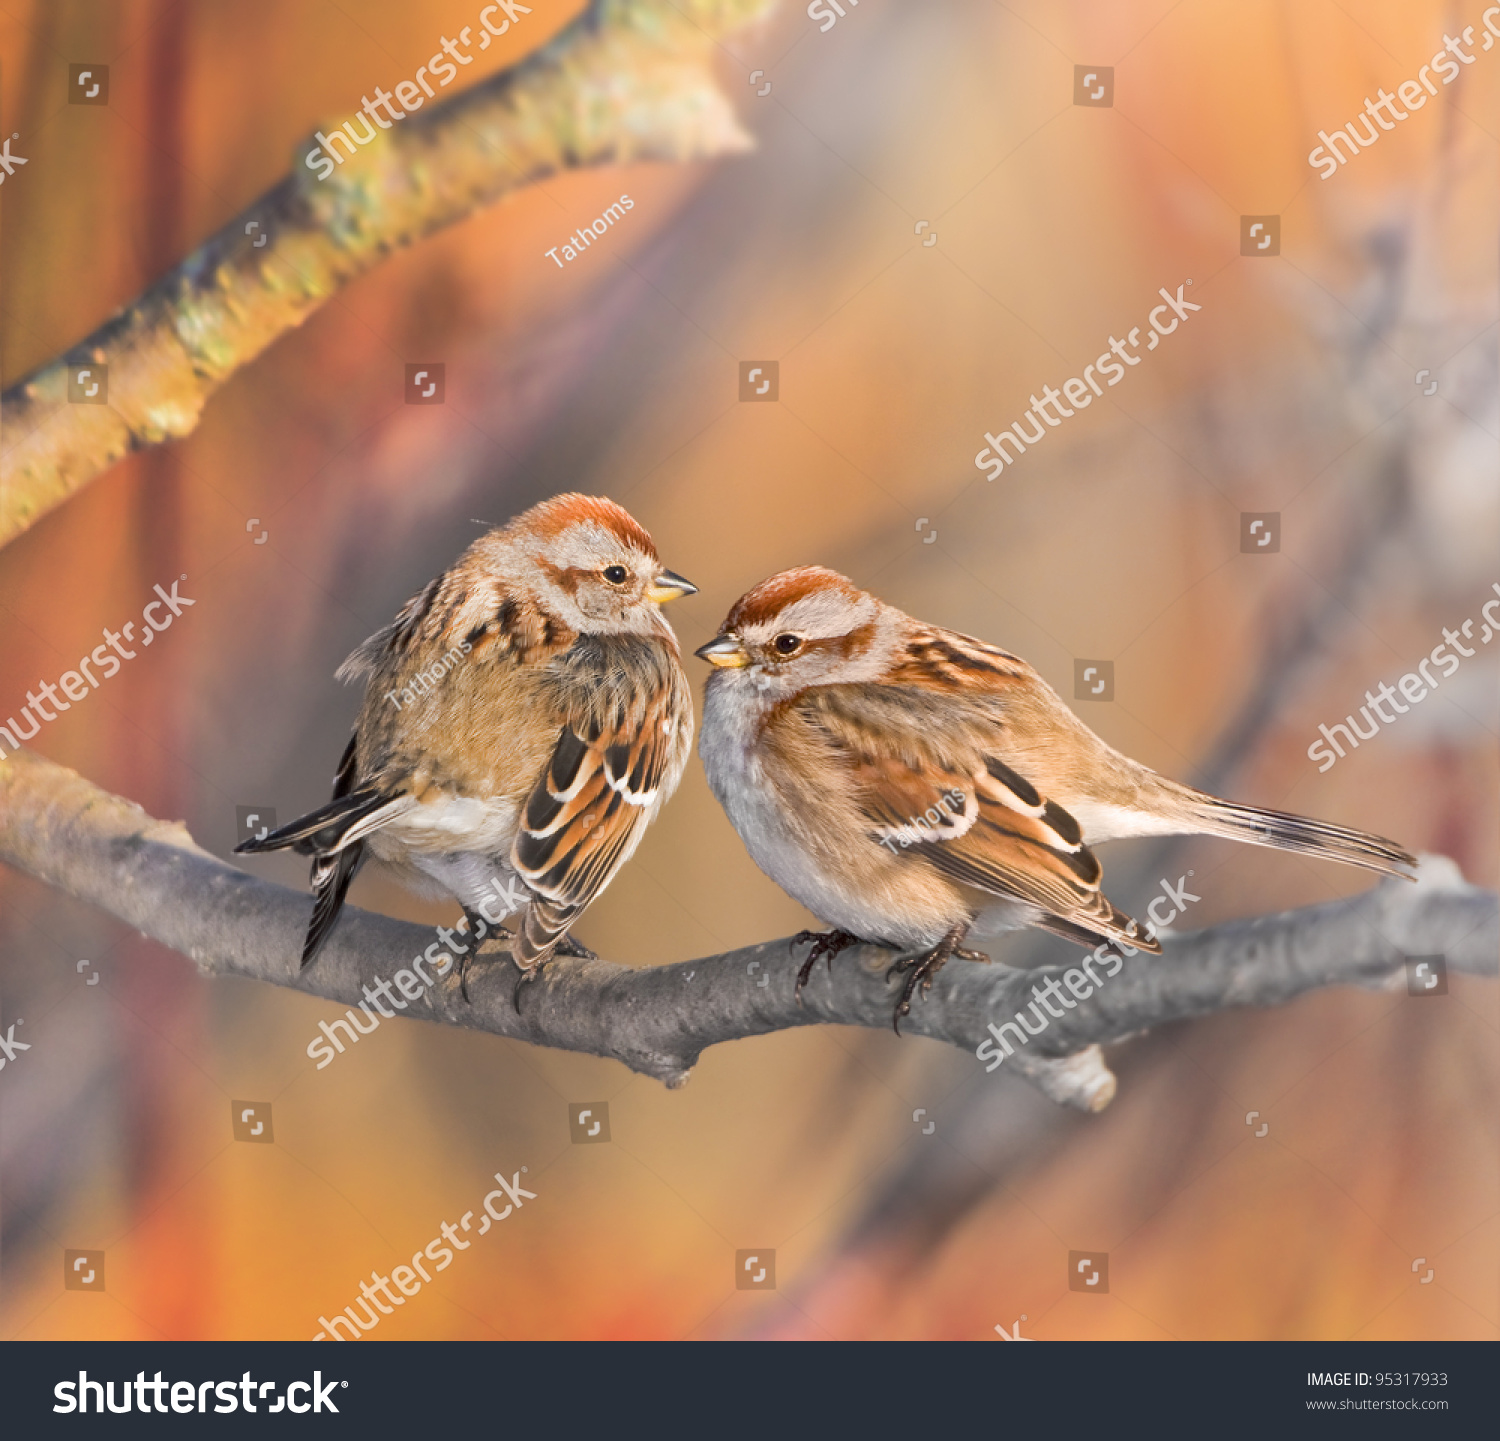 stock-photo-american-tree-sparrow-couple